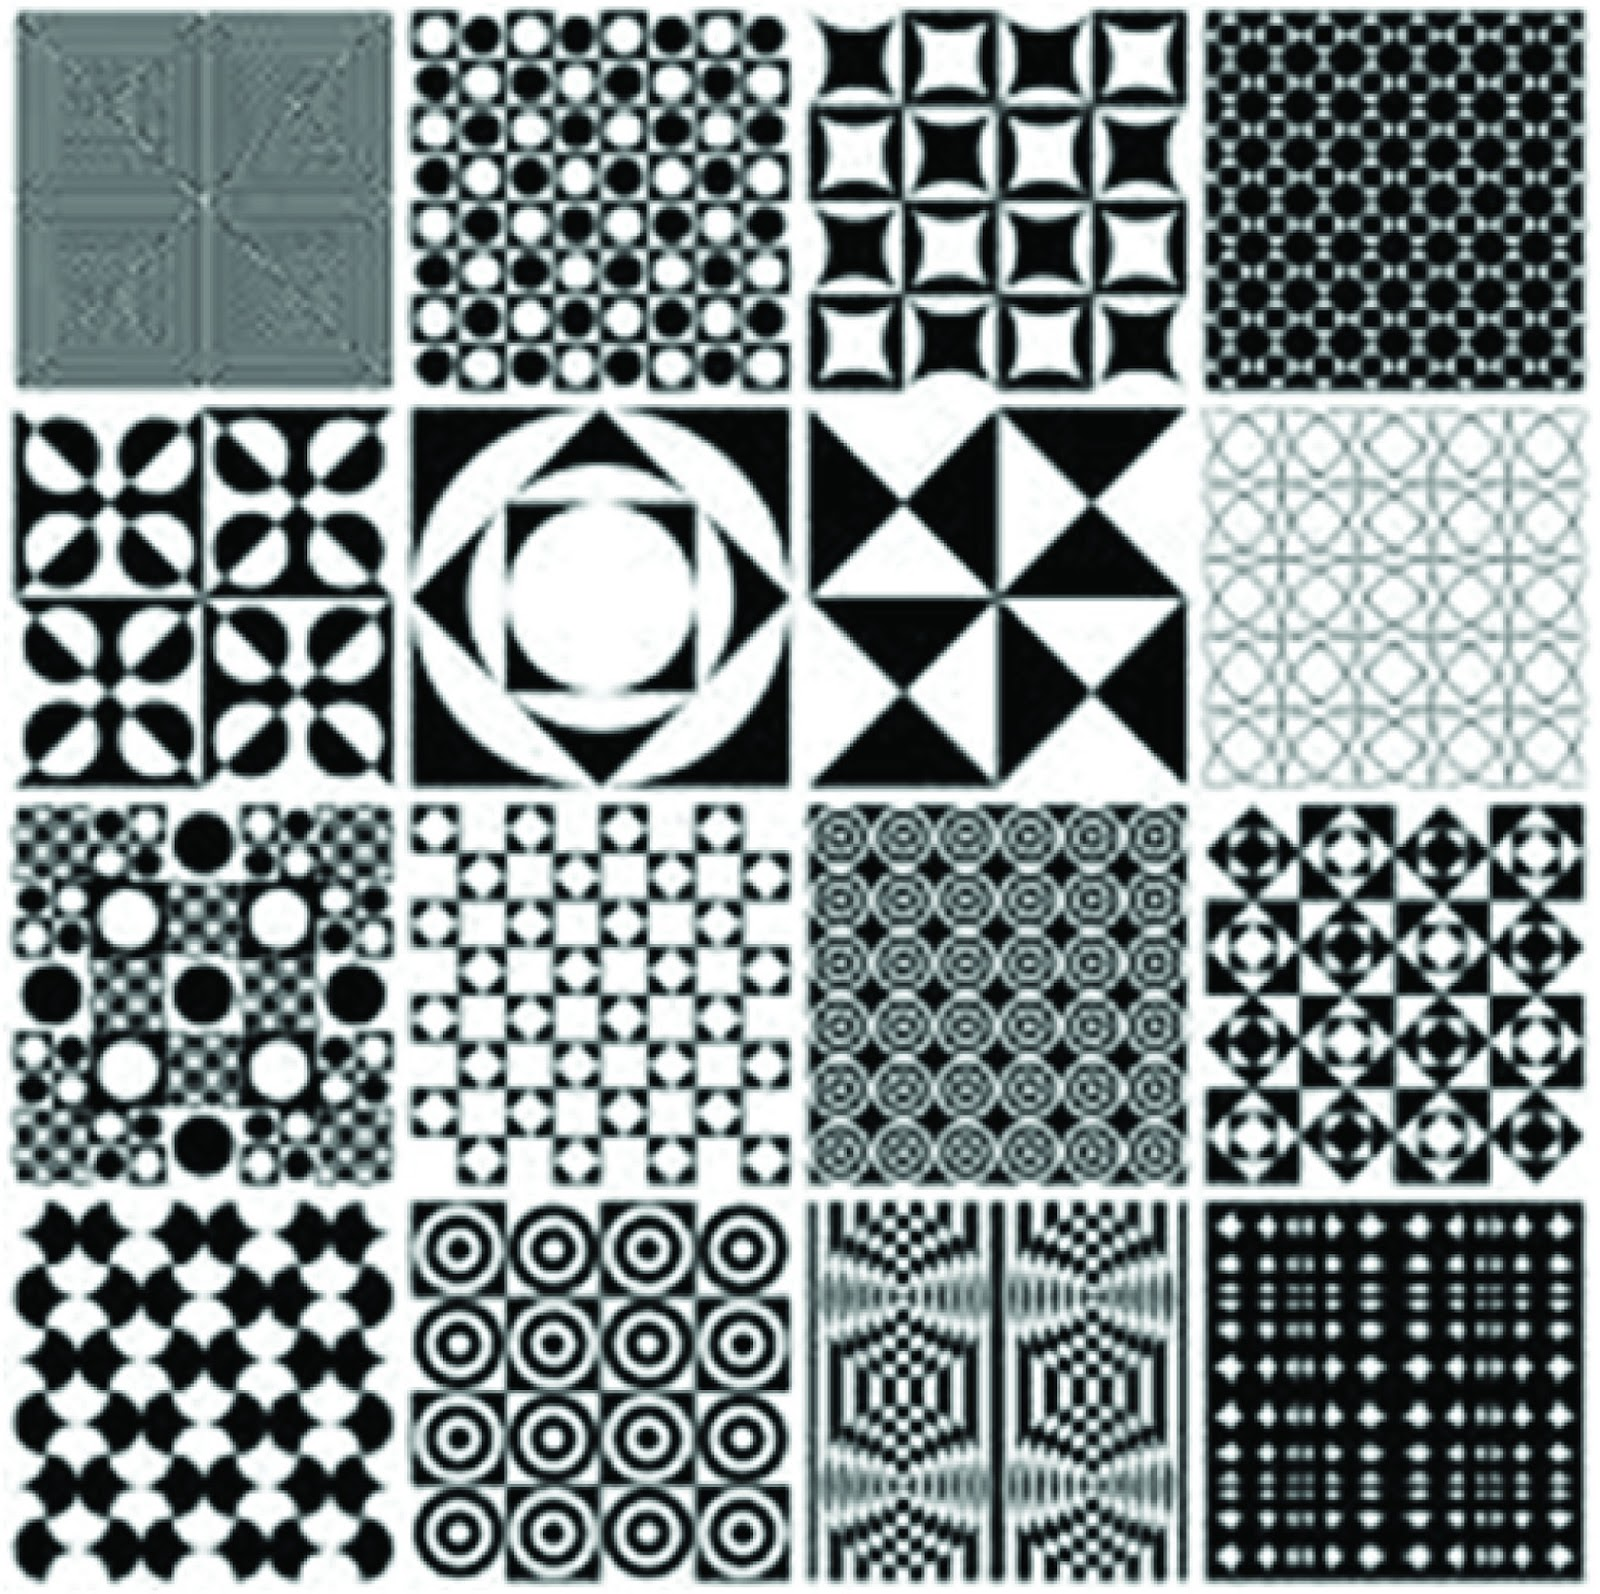 Different Art Designs : Textile design idea different type of patterns